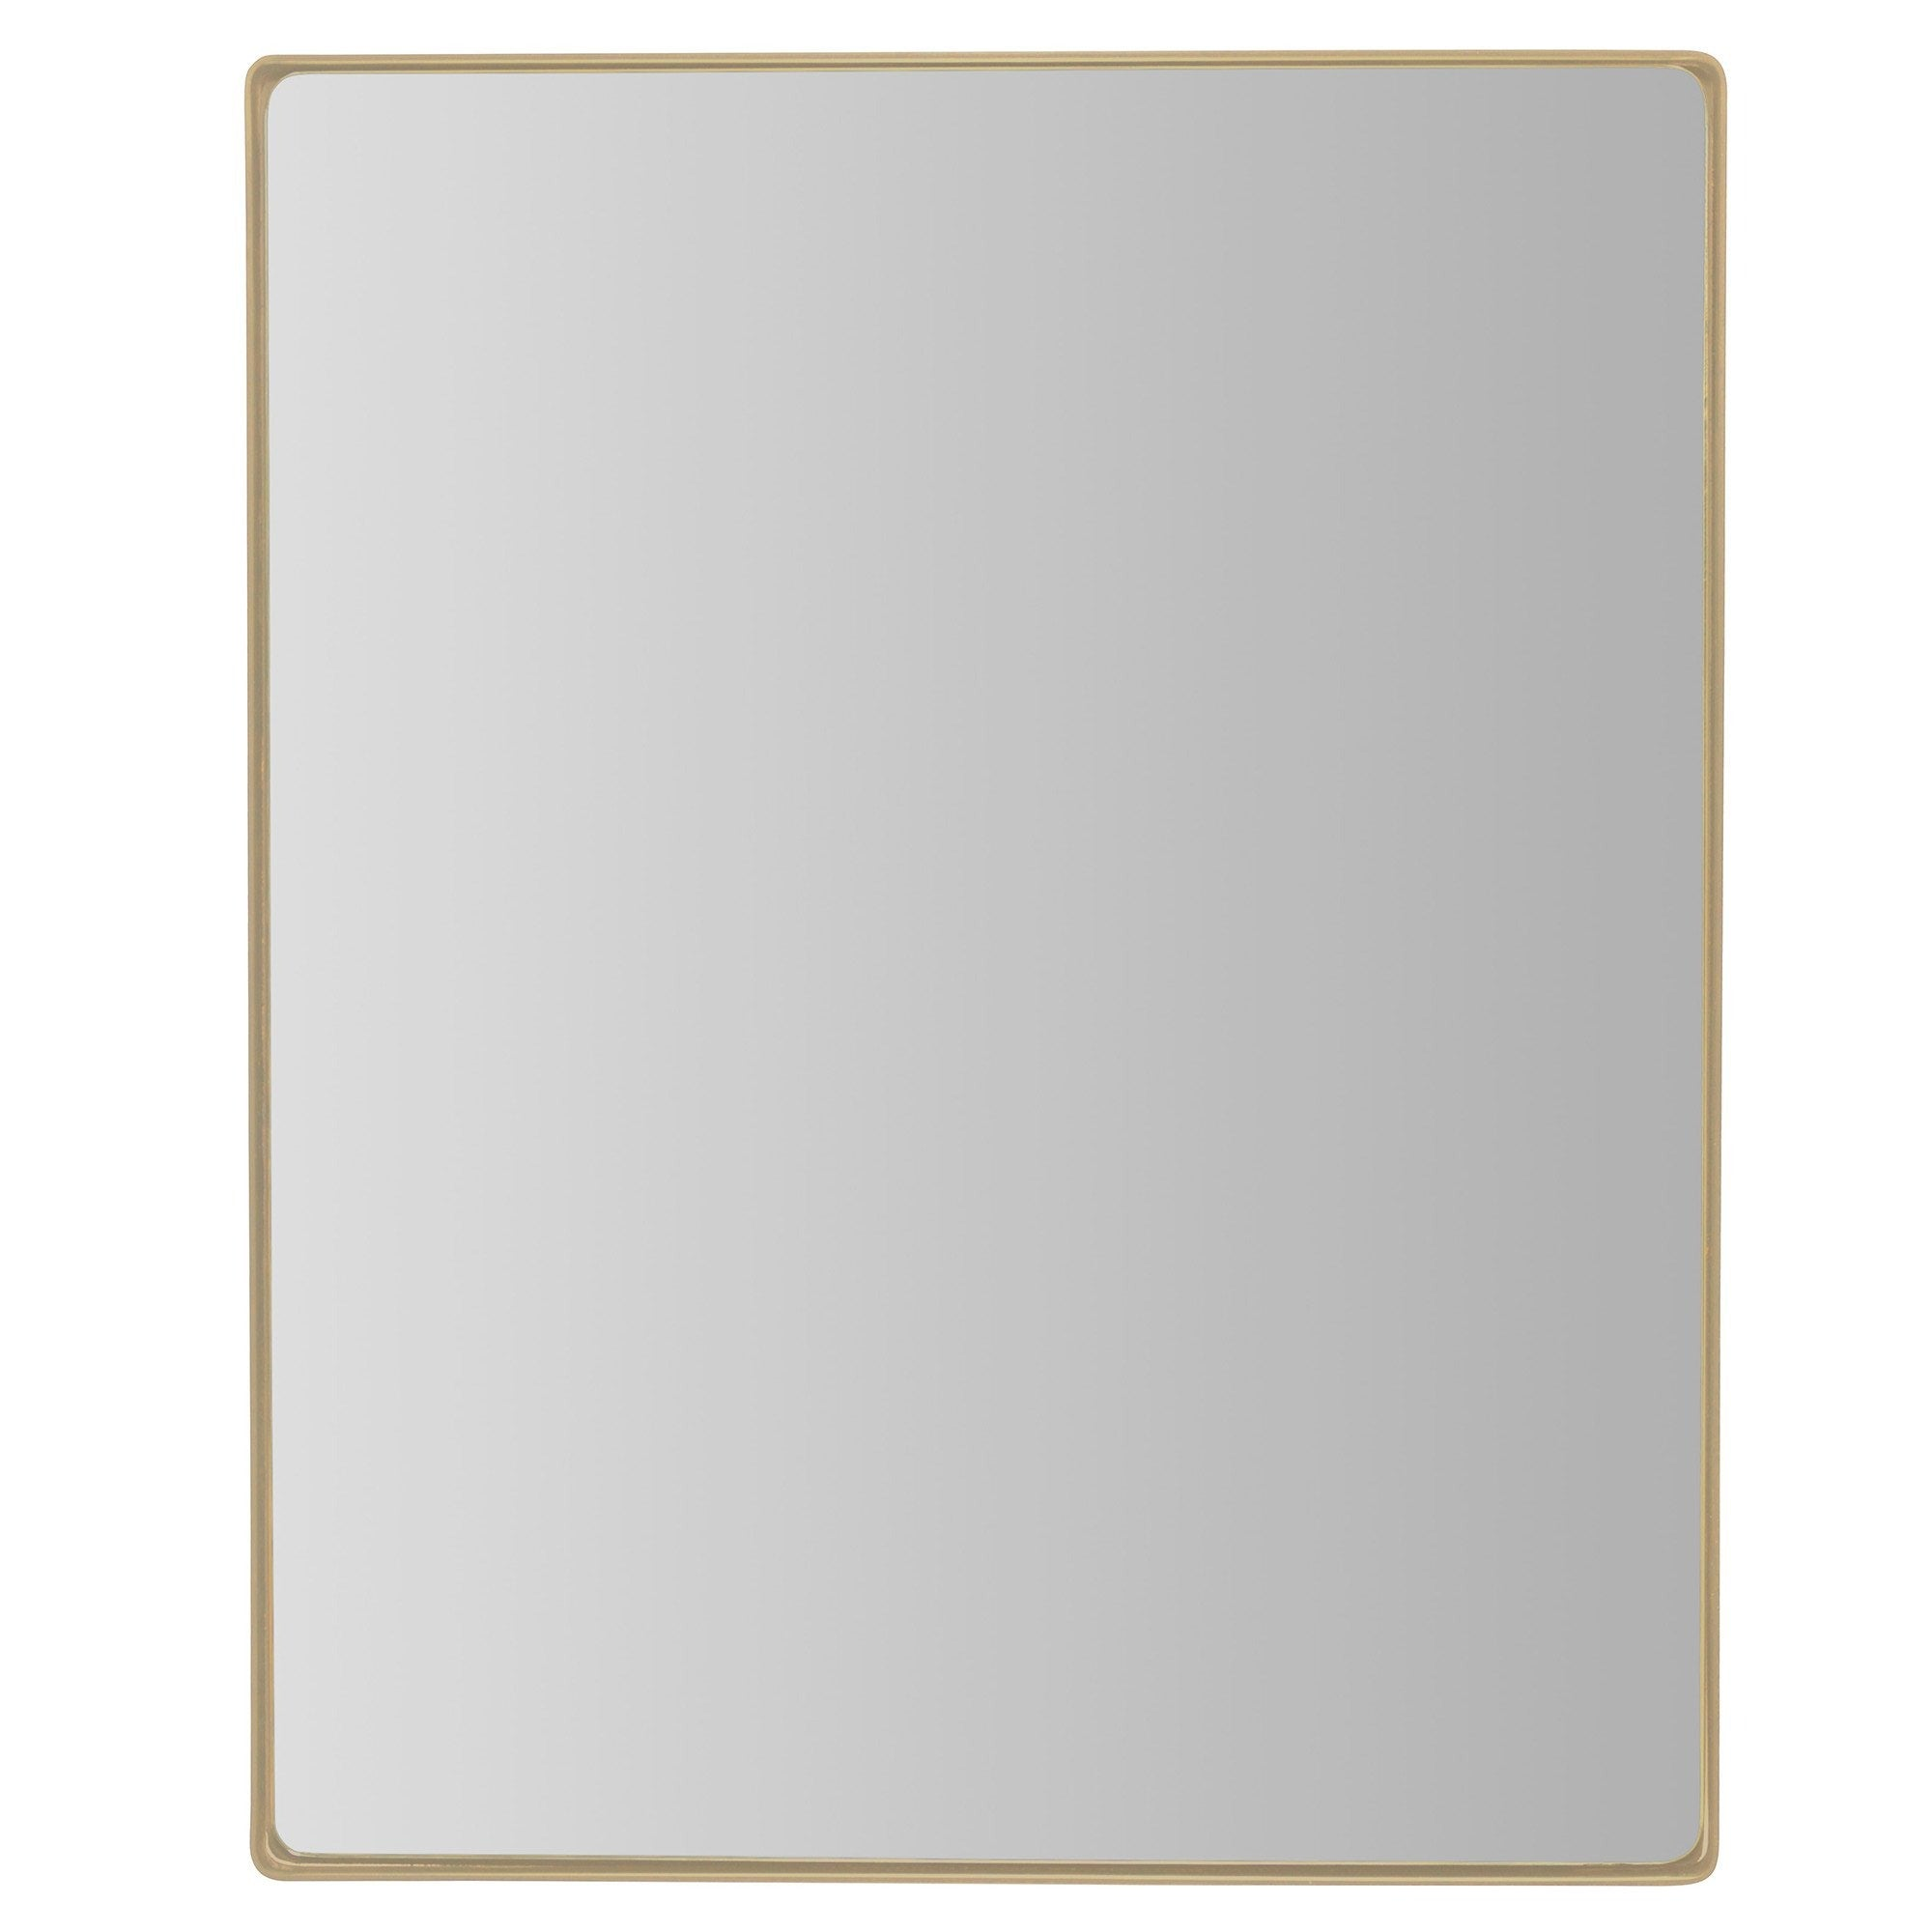 Kye 24x30 Rectangular Rounded Wall Mirror - Gold - 407A02GO